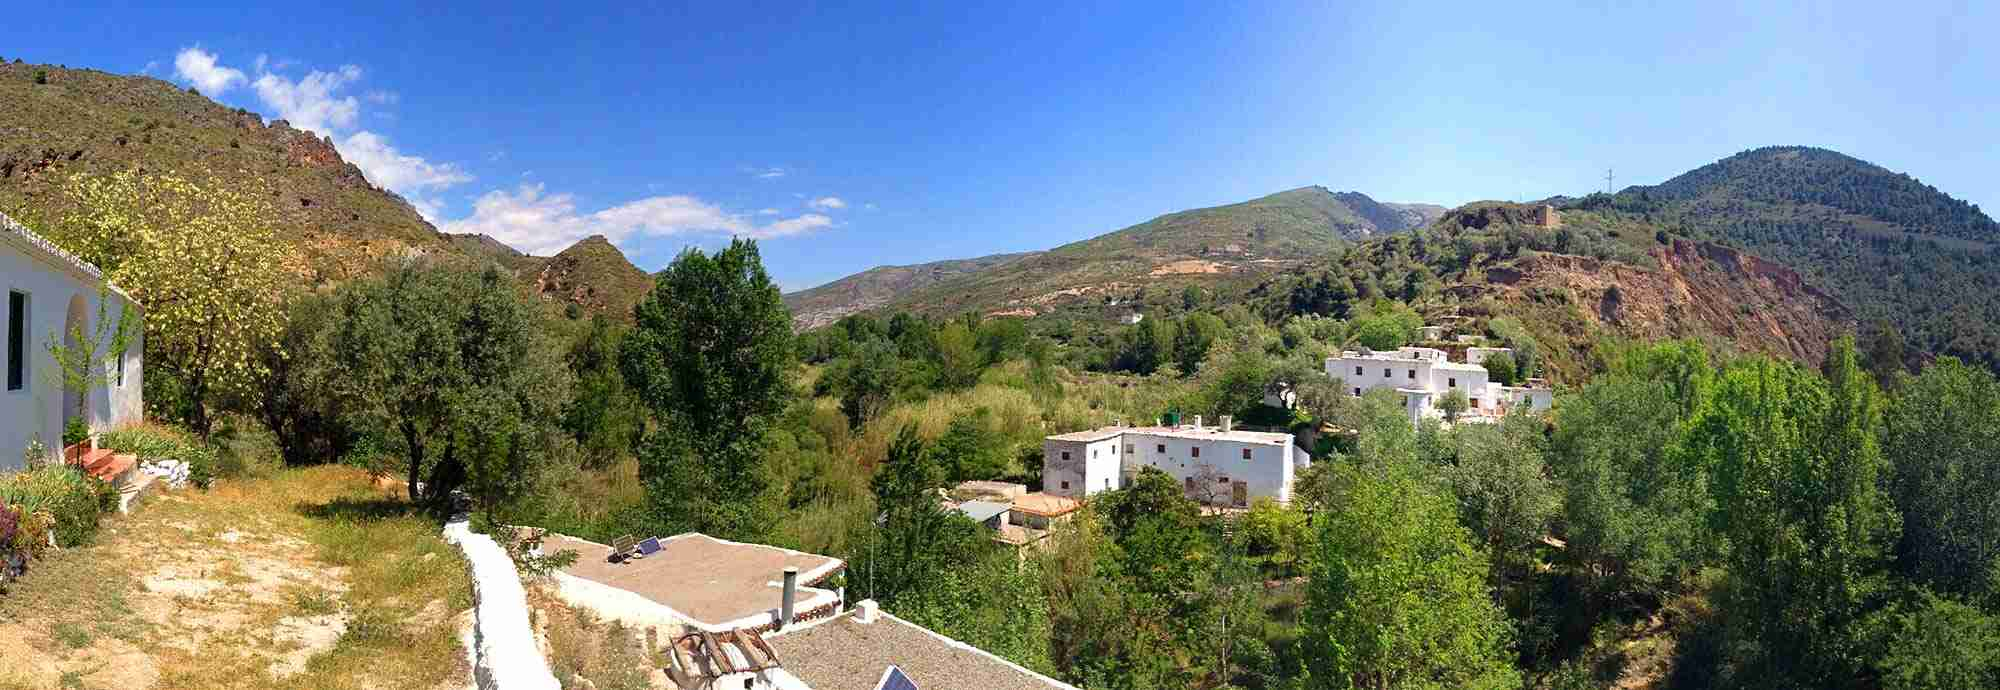 Walk into village or town Holiday  Villas in Orgiva near the beach